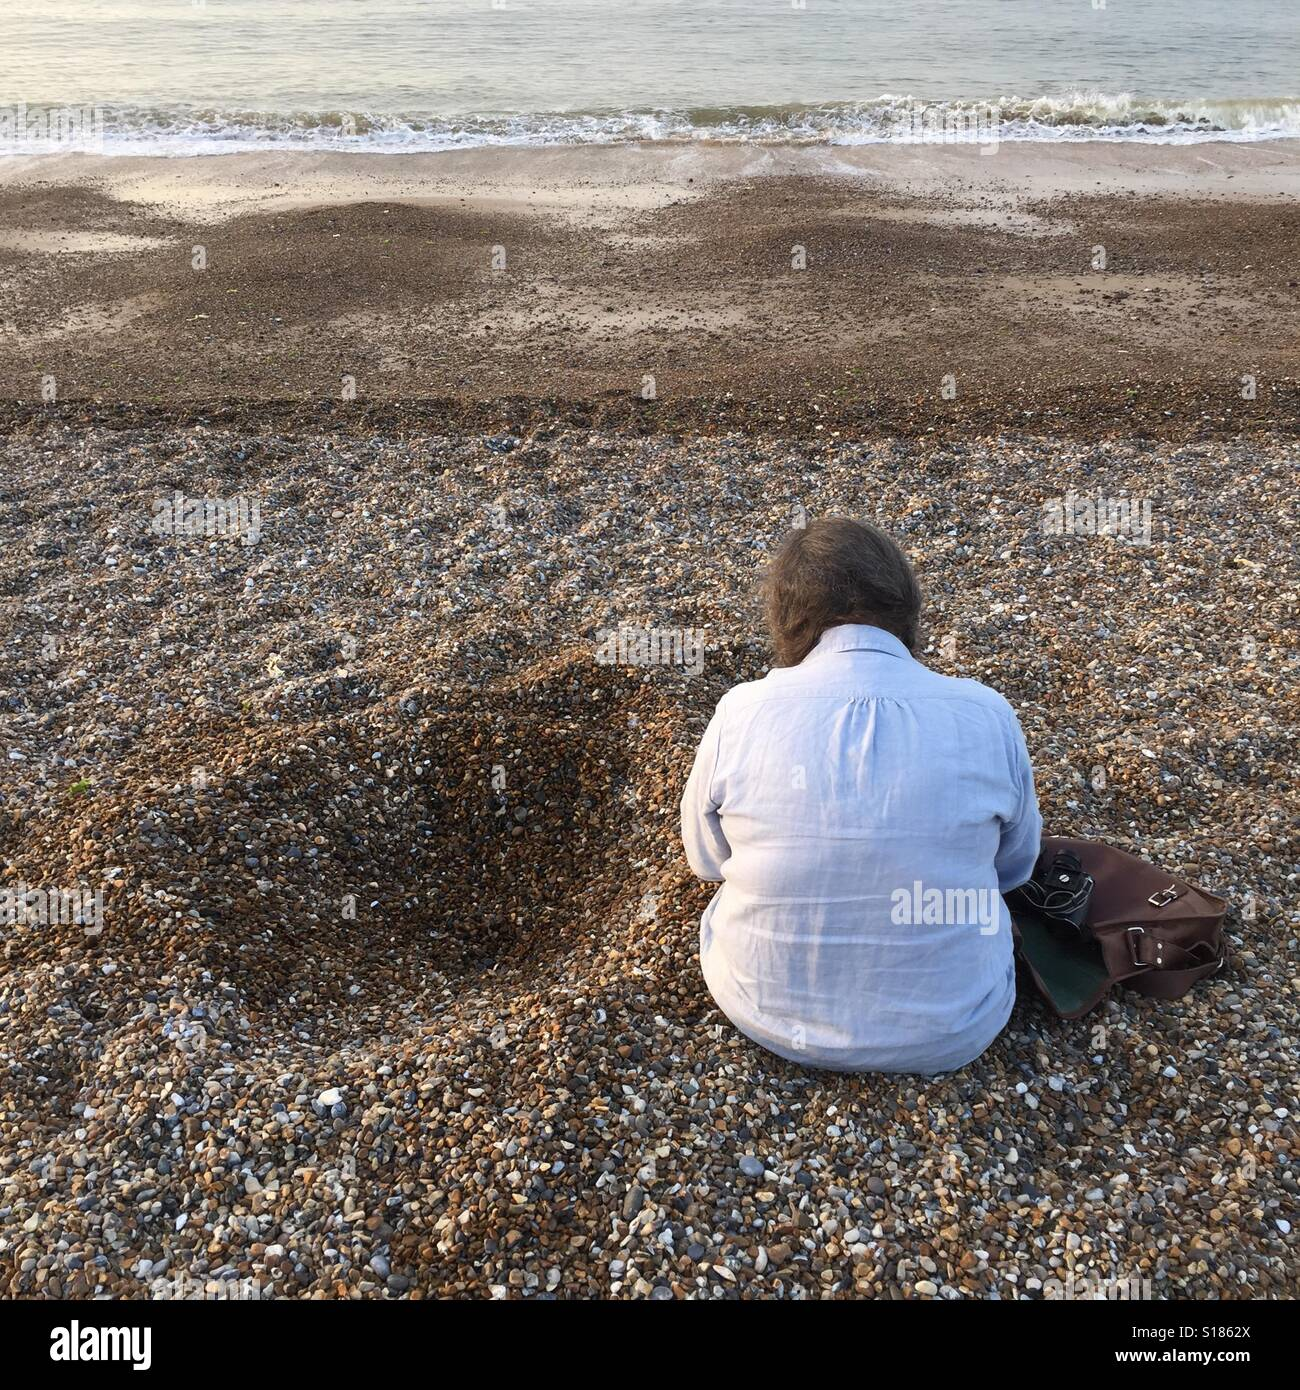 Contemplation on the beach - Stock Image